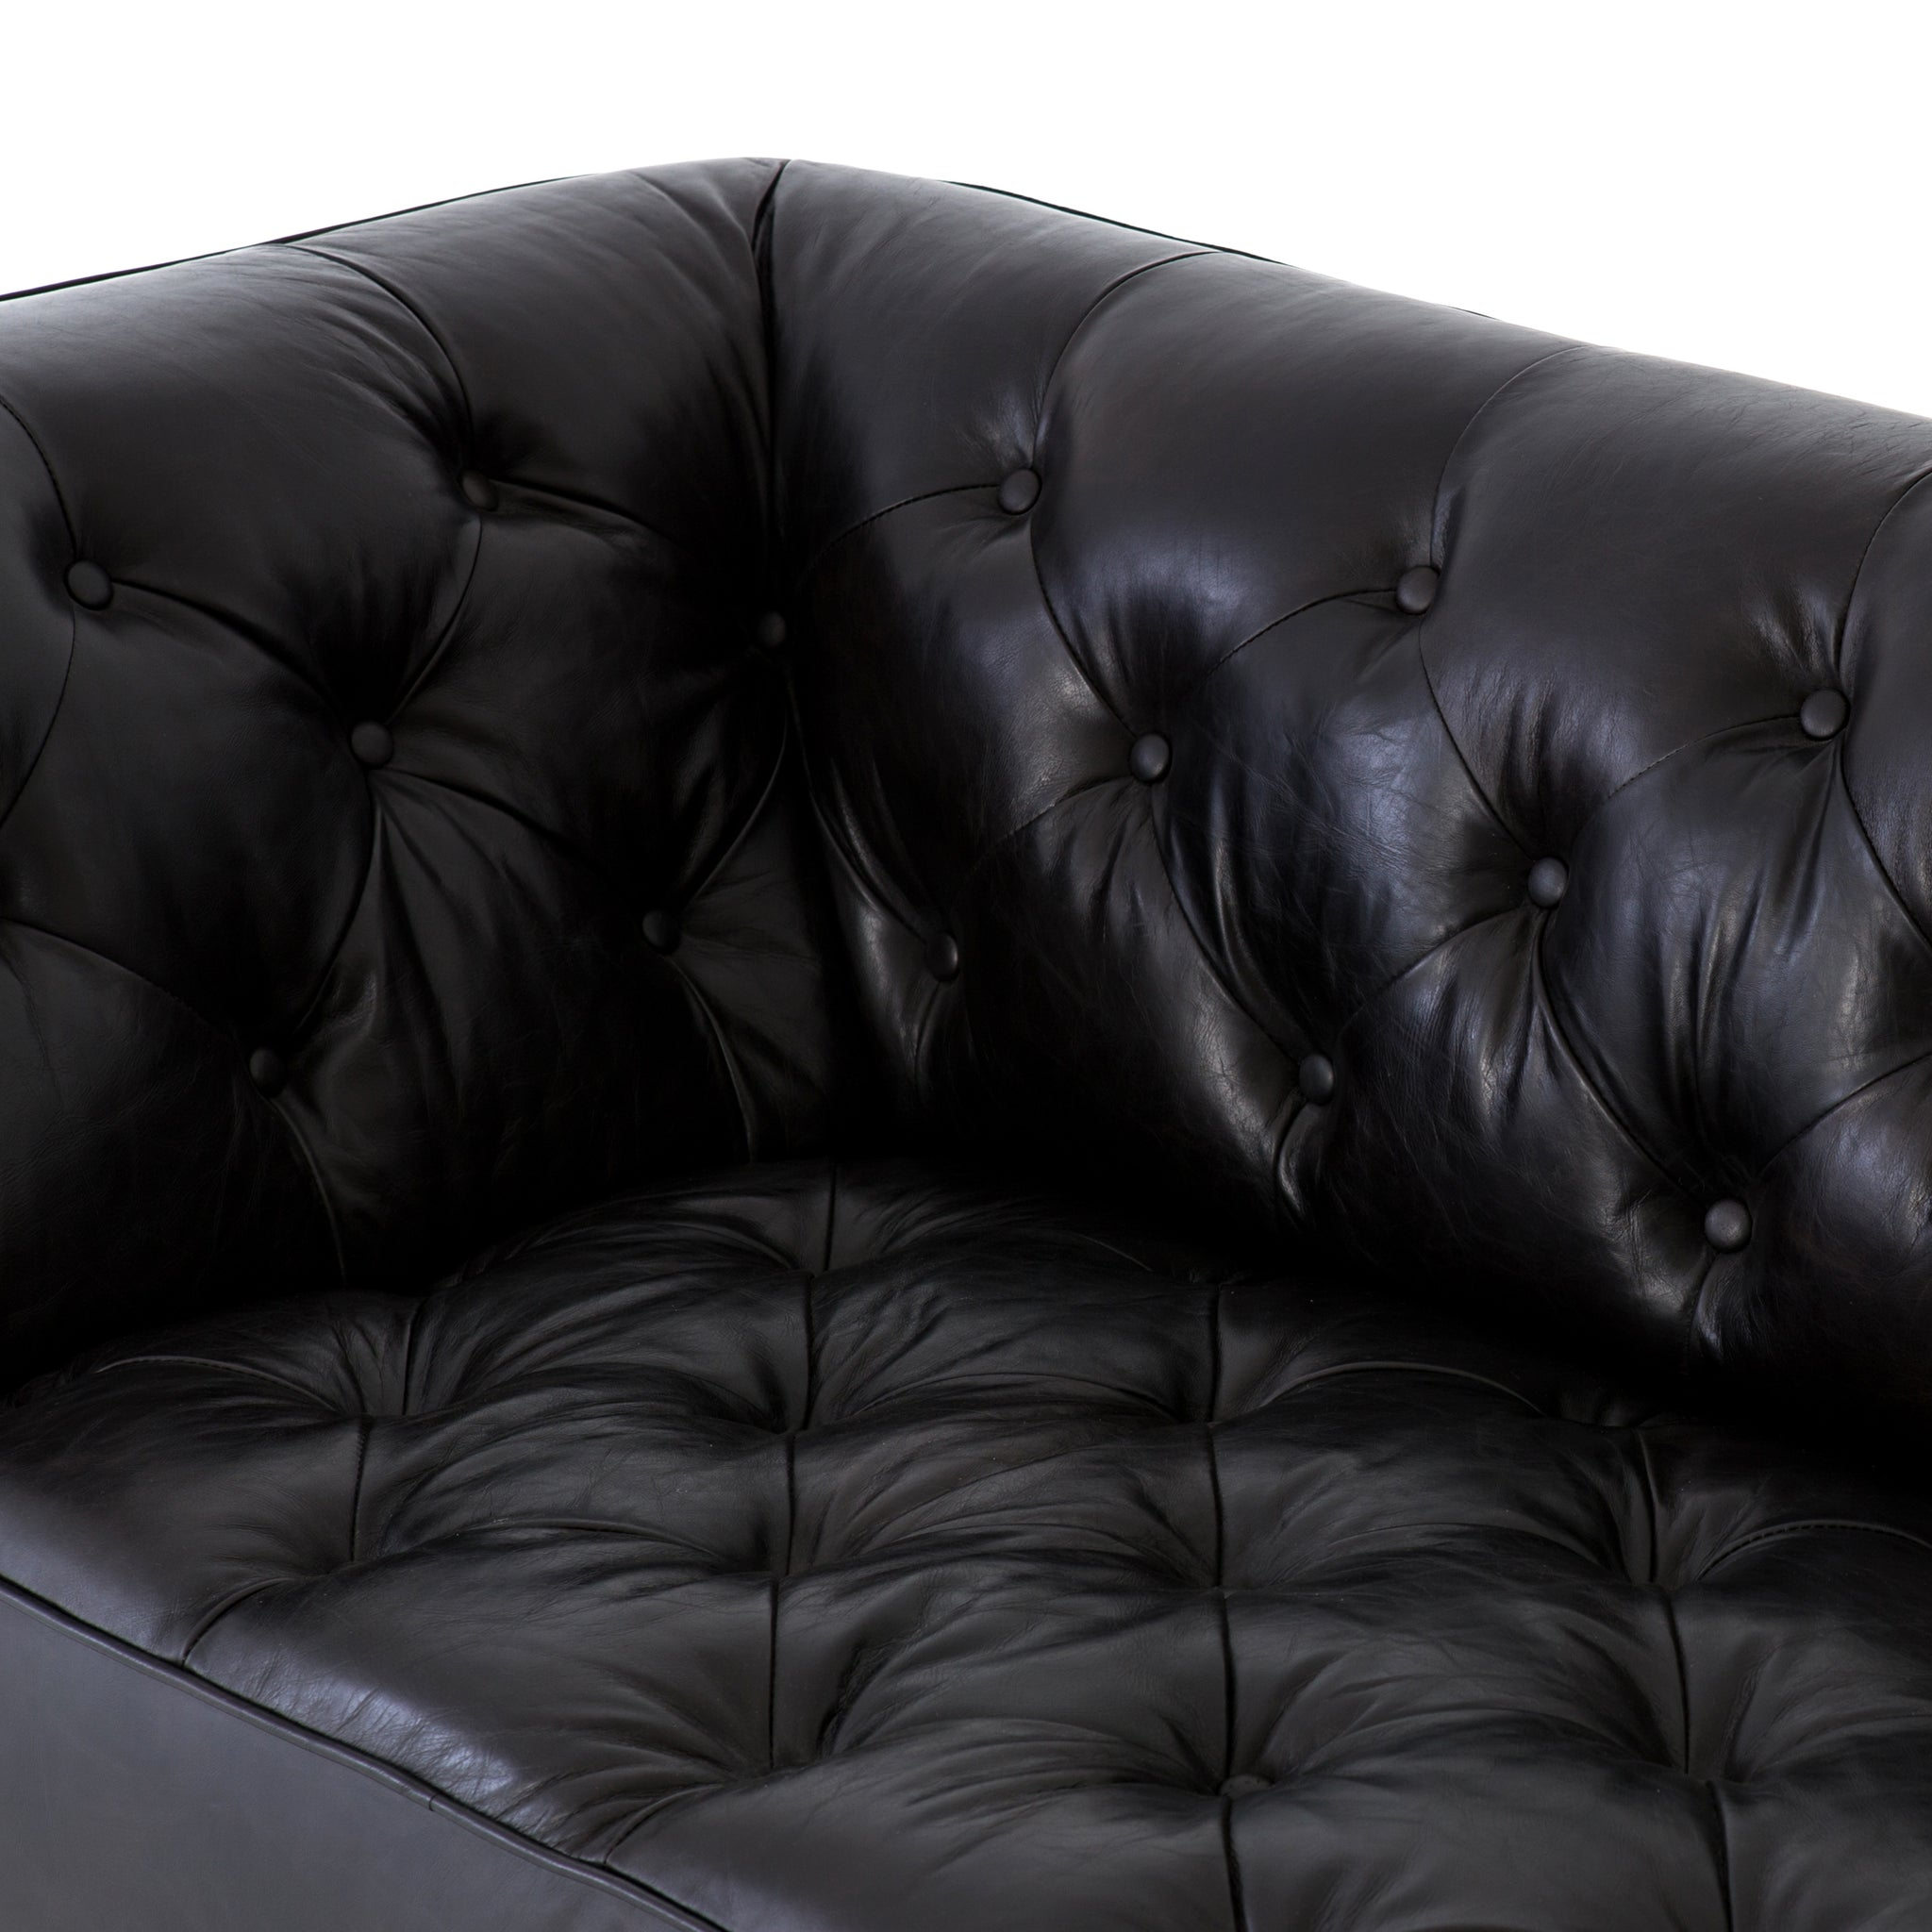 Contemporary Black Top Grain Leather Chesterfield - Furniture on Main